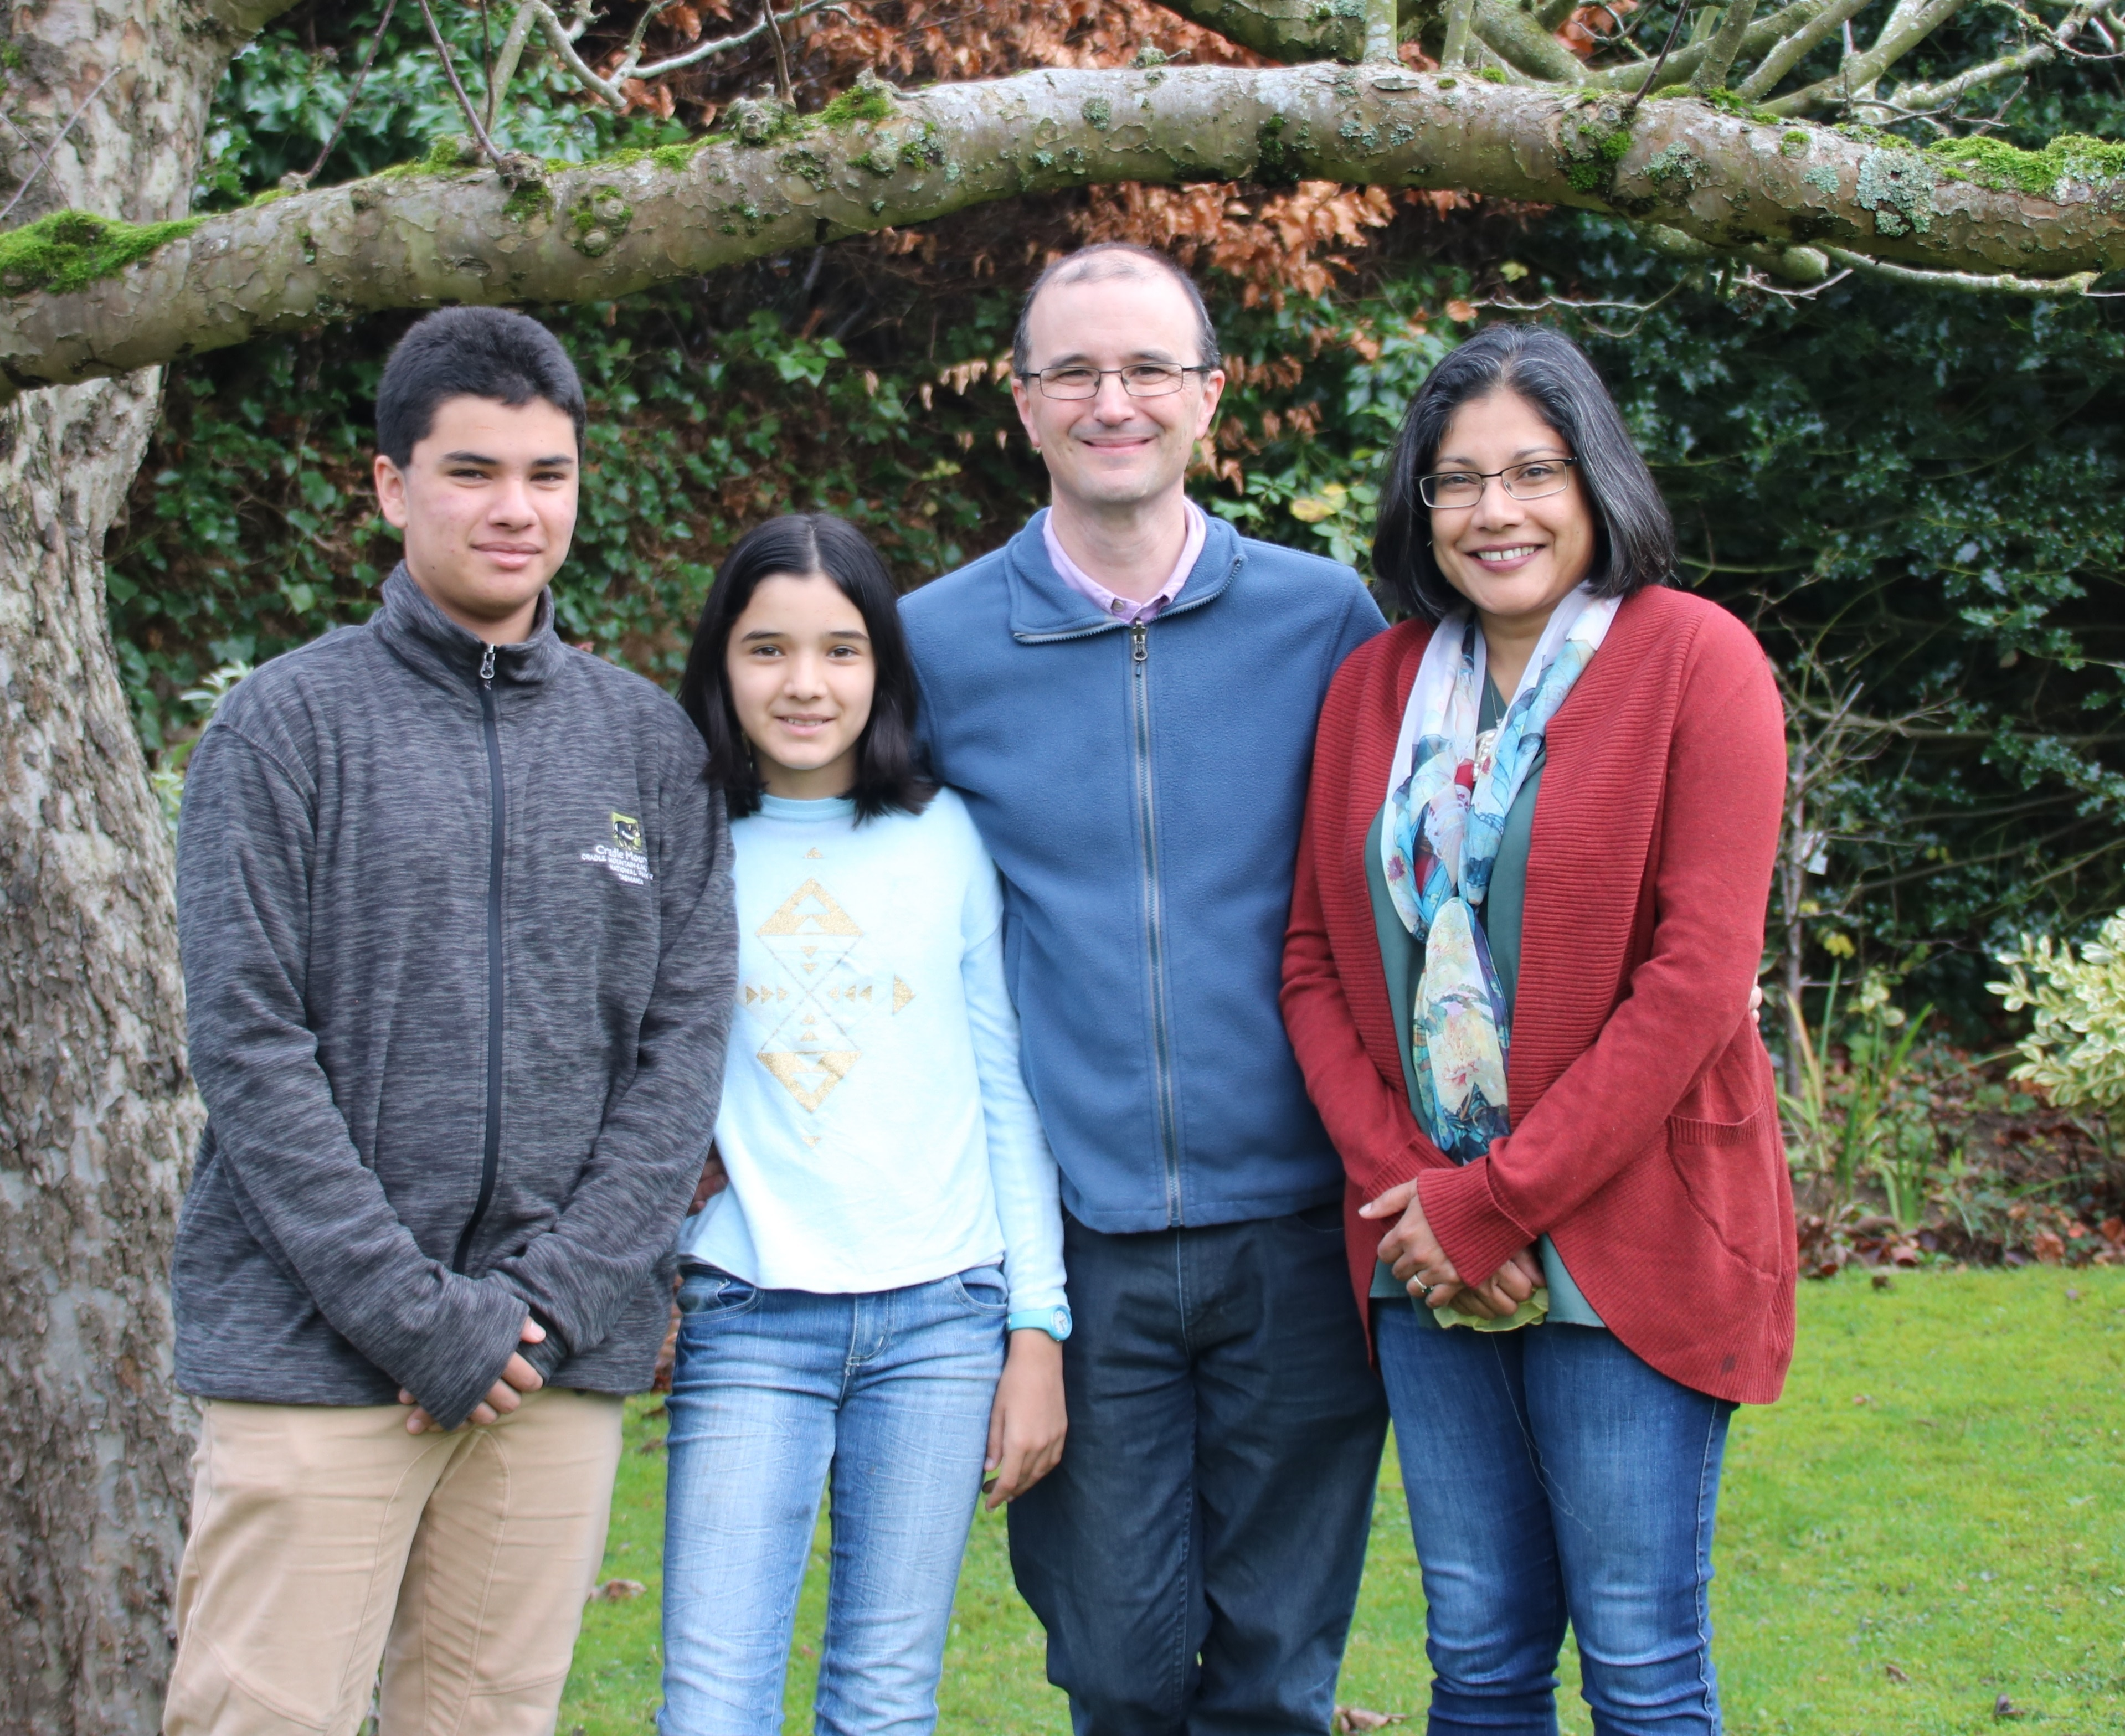 Chris Goringe, with wife Sureka and children Jeyanth and Maya during their last trip to the UK in 2018.